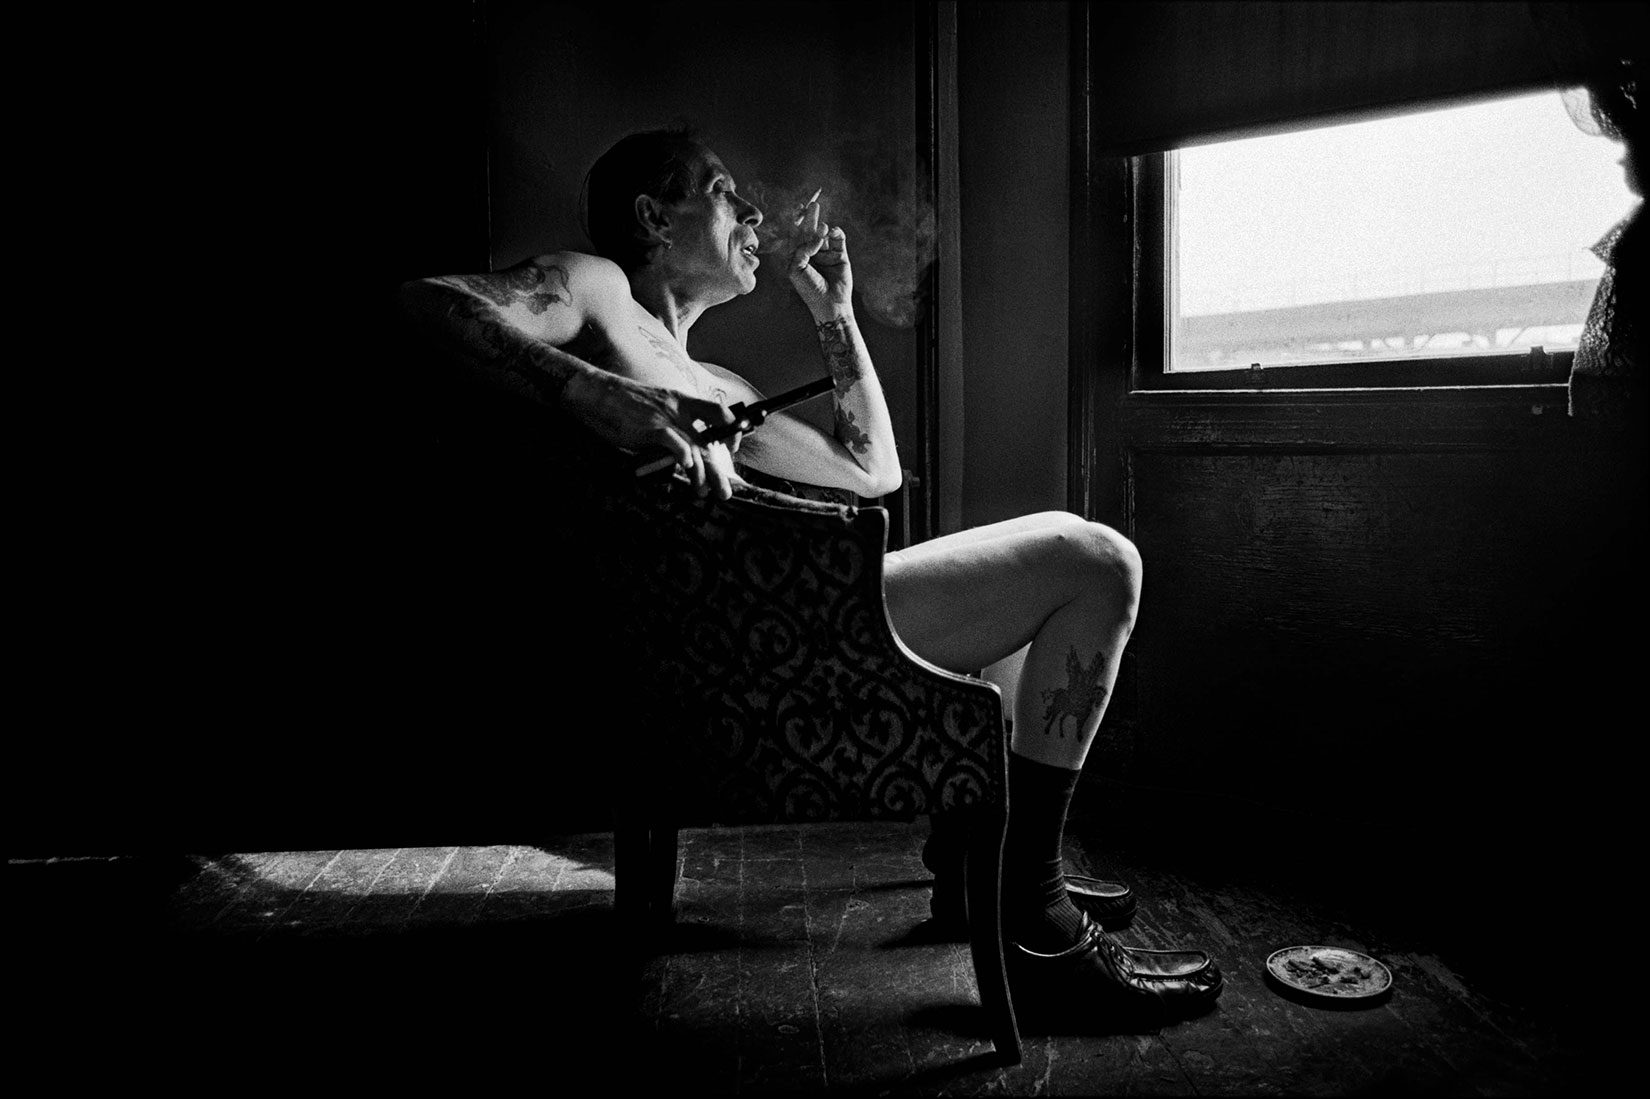 The Sol Mednick Gallery, Pa.: Sept. 30 - Oct. 28                                                                                             (Caption: Uncle Charlie contemplating in his living room the reality that his son Joe is dying from HIV, sitting by the window holding his newest and latest handgun in his apartment in Bushwick, Brooklyn in 1996)